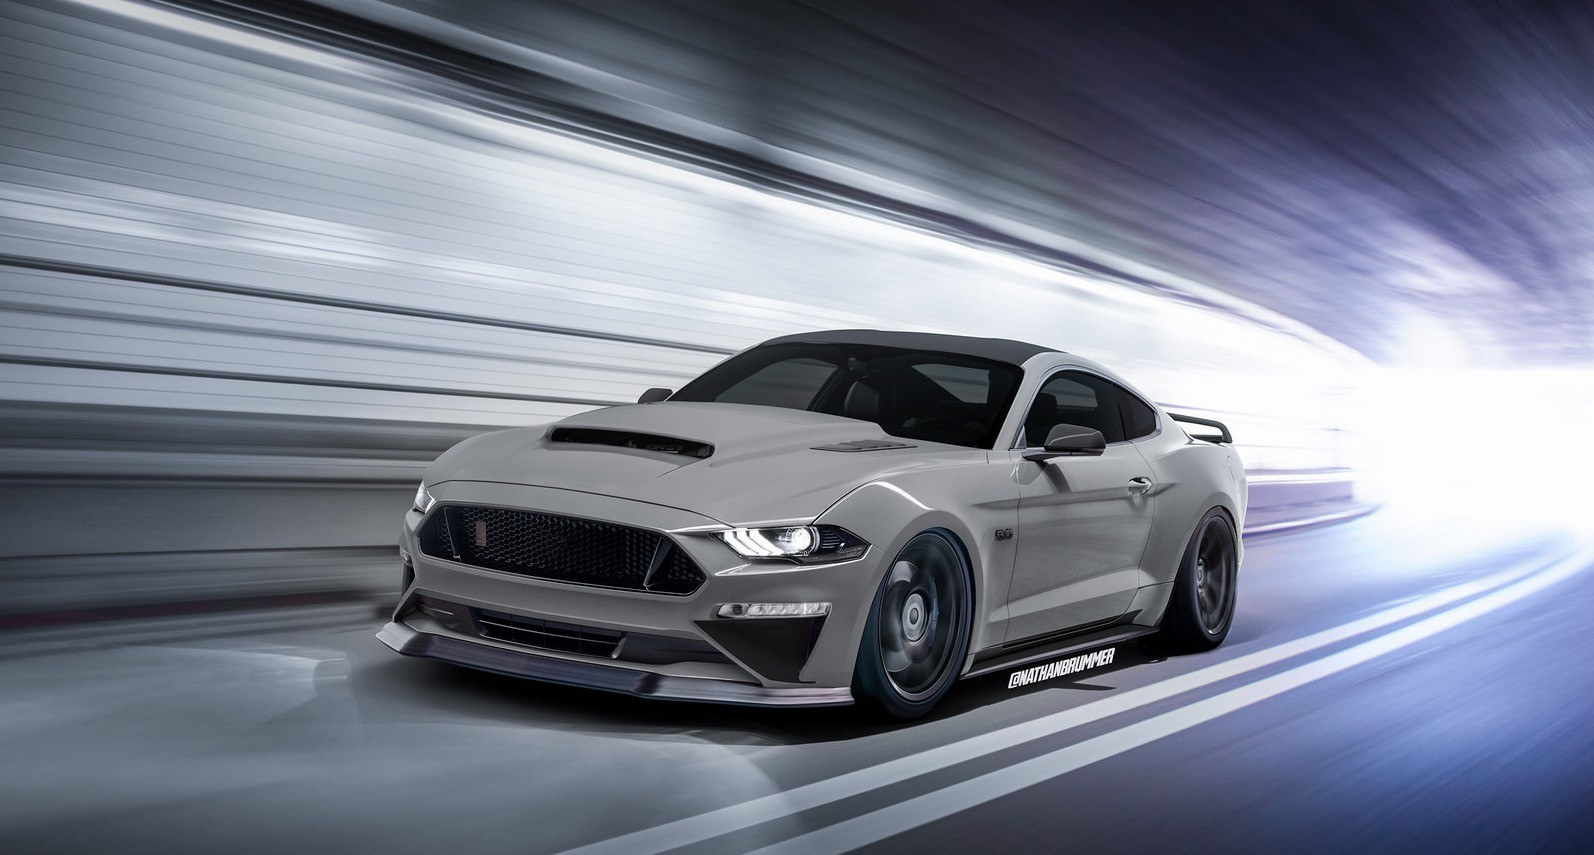 What If the 2019 Shelby GT500 Mustang Looked Like This ...